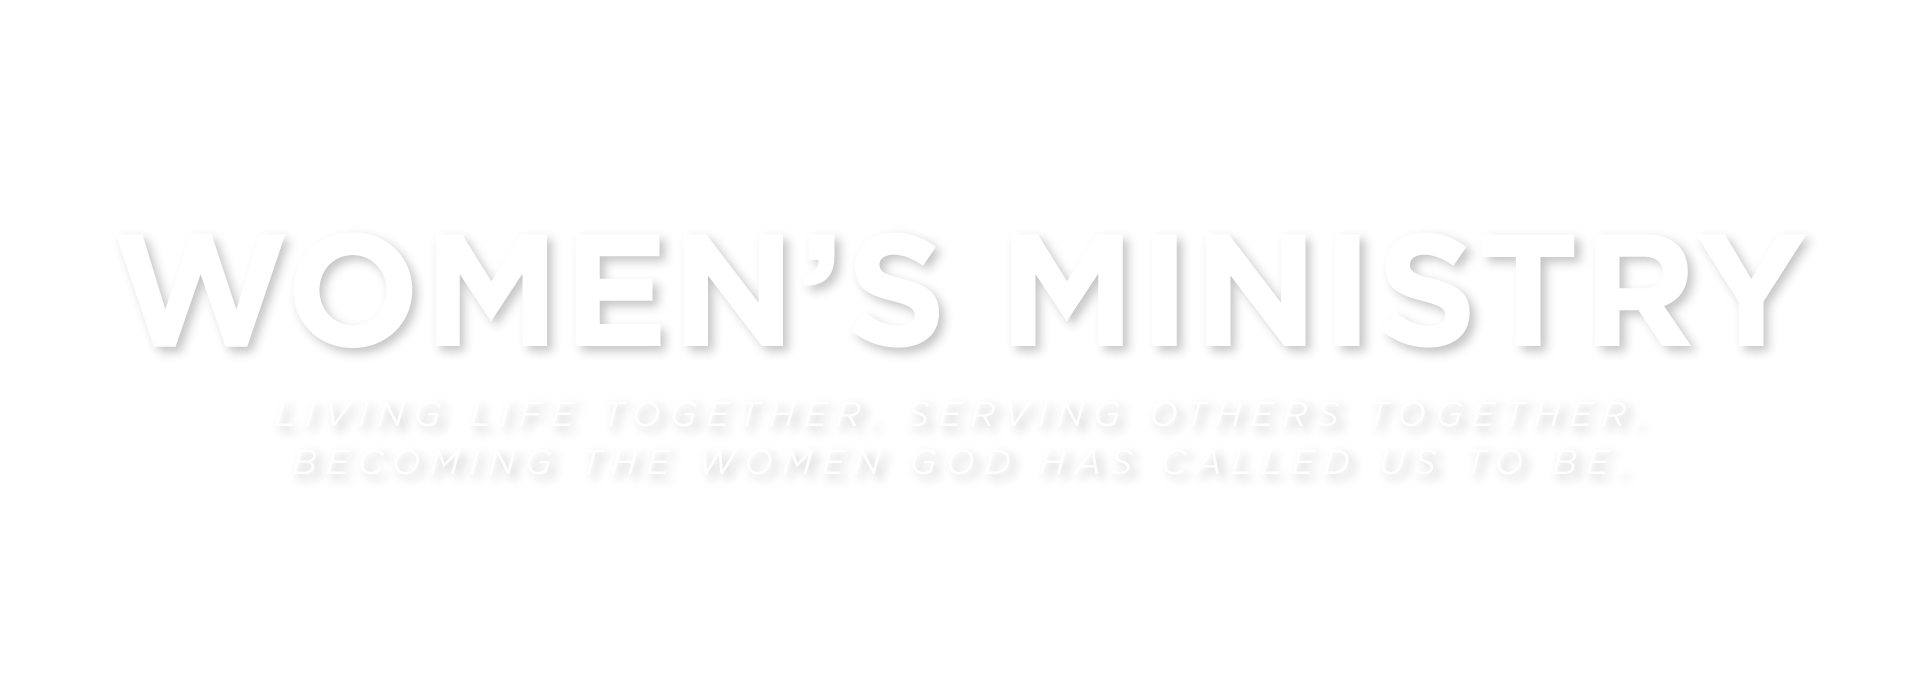 Women's Ministry-01.png